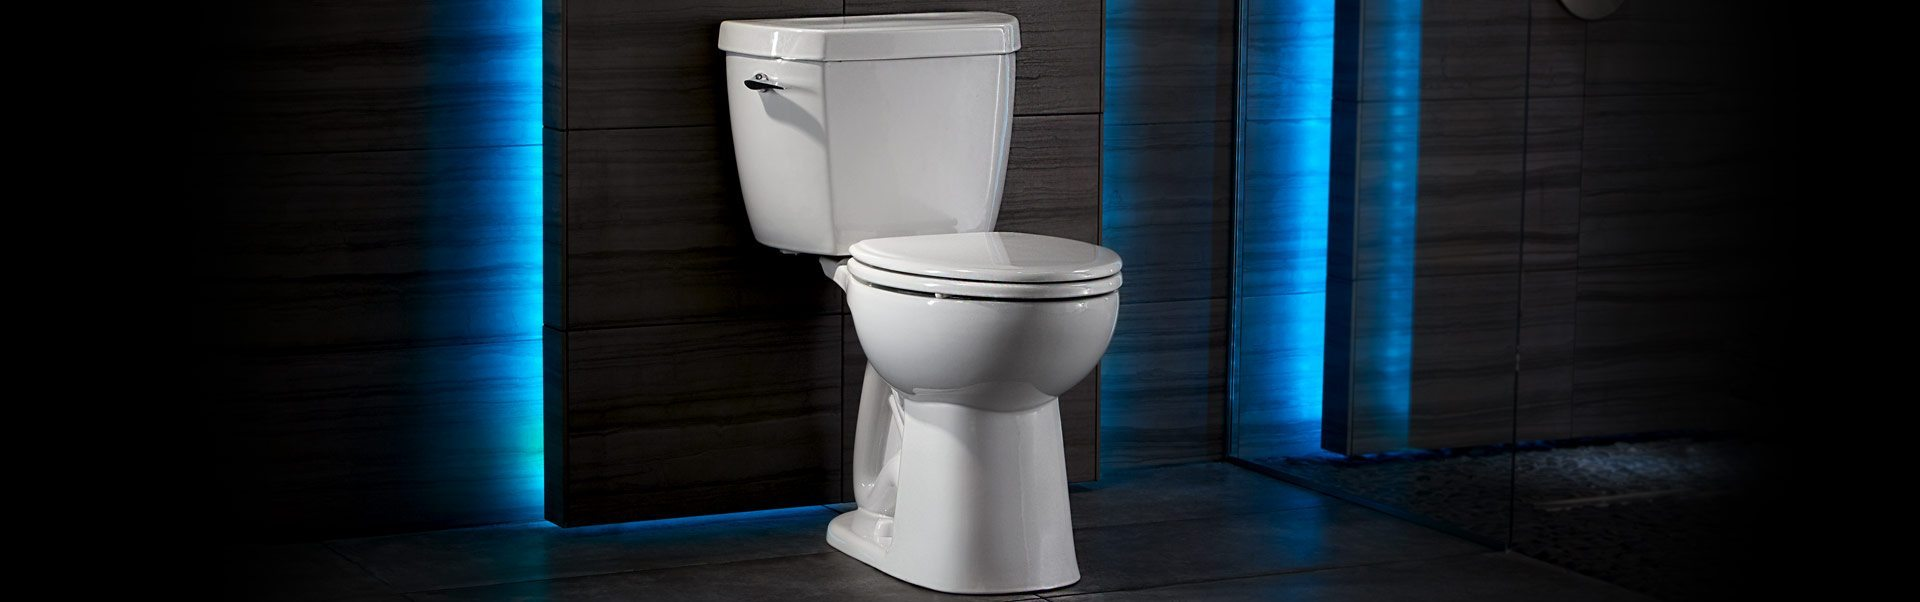 10 Inch Rough In Toilet Canada 6 Best Dual Flush Toilets Apr 2019 Reviews Buying Guide